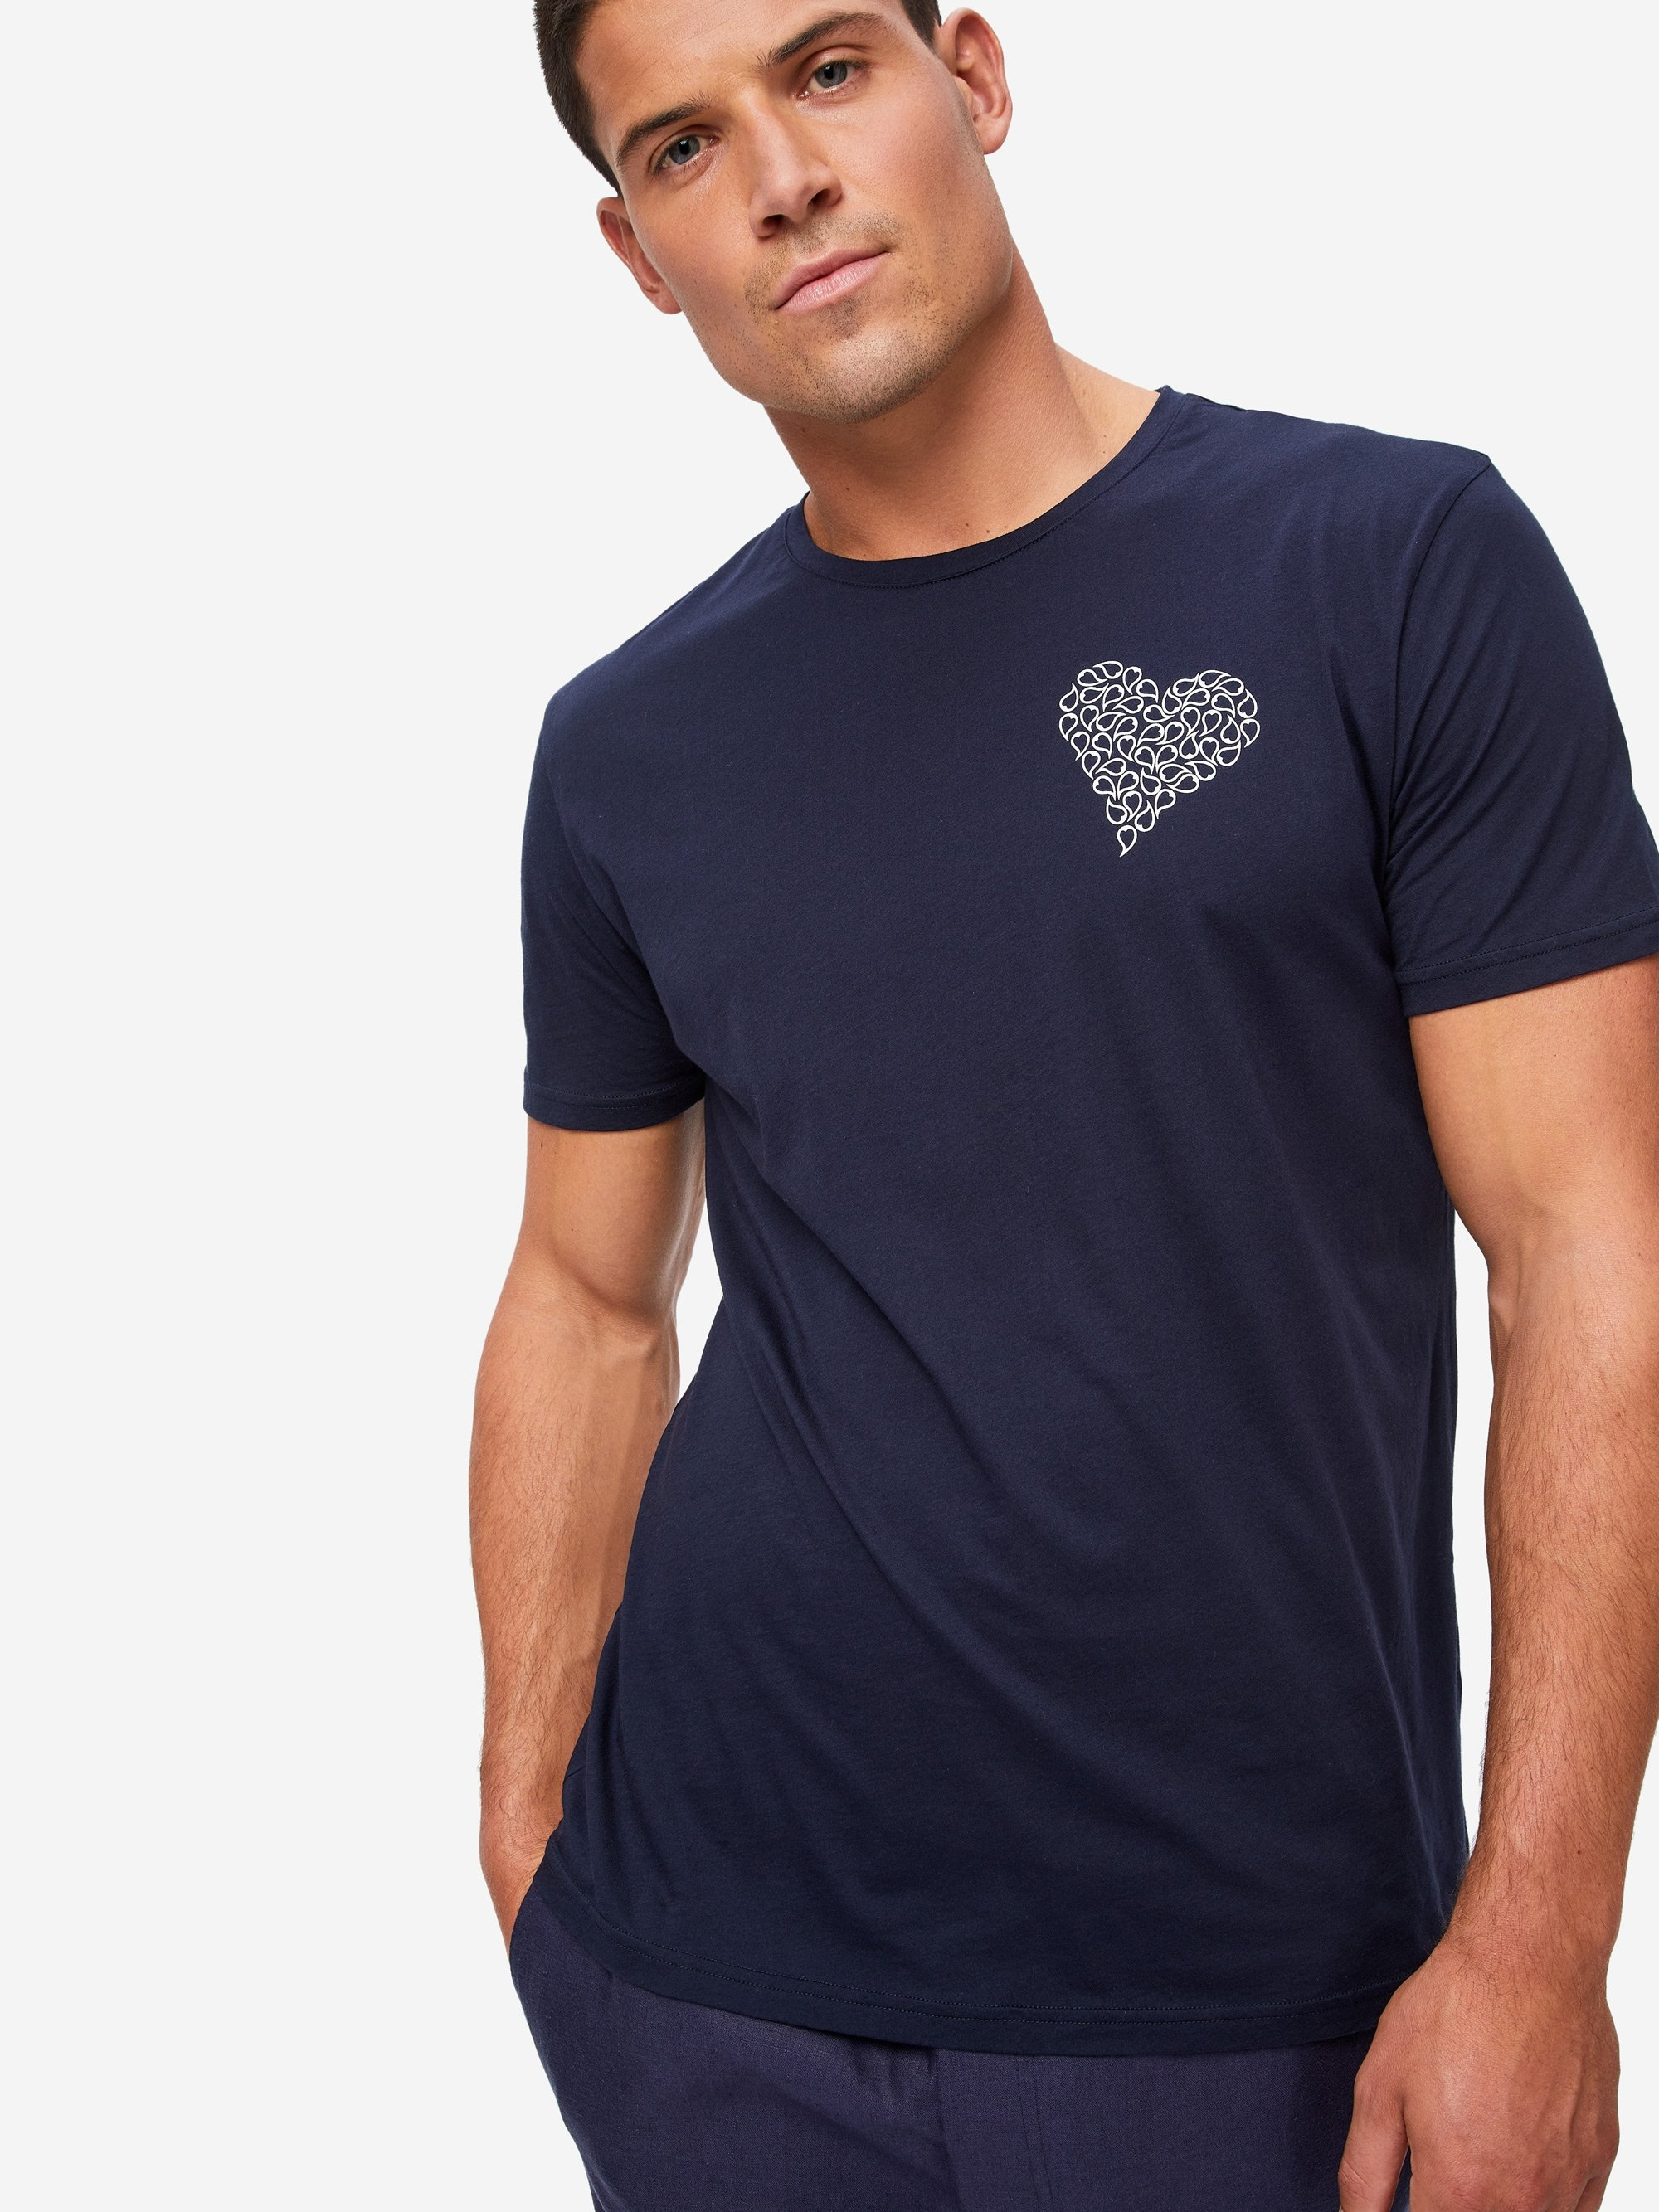 Men's Short Sleeve T-Shirt Ripley 3 Pima Cotton Navy